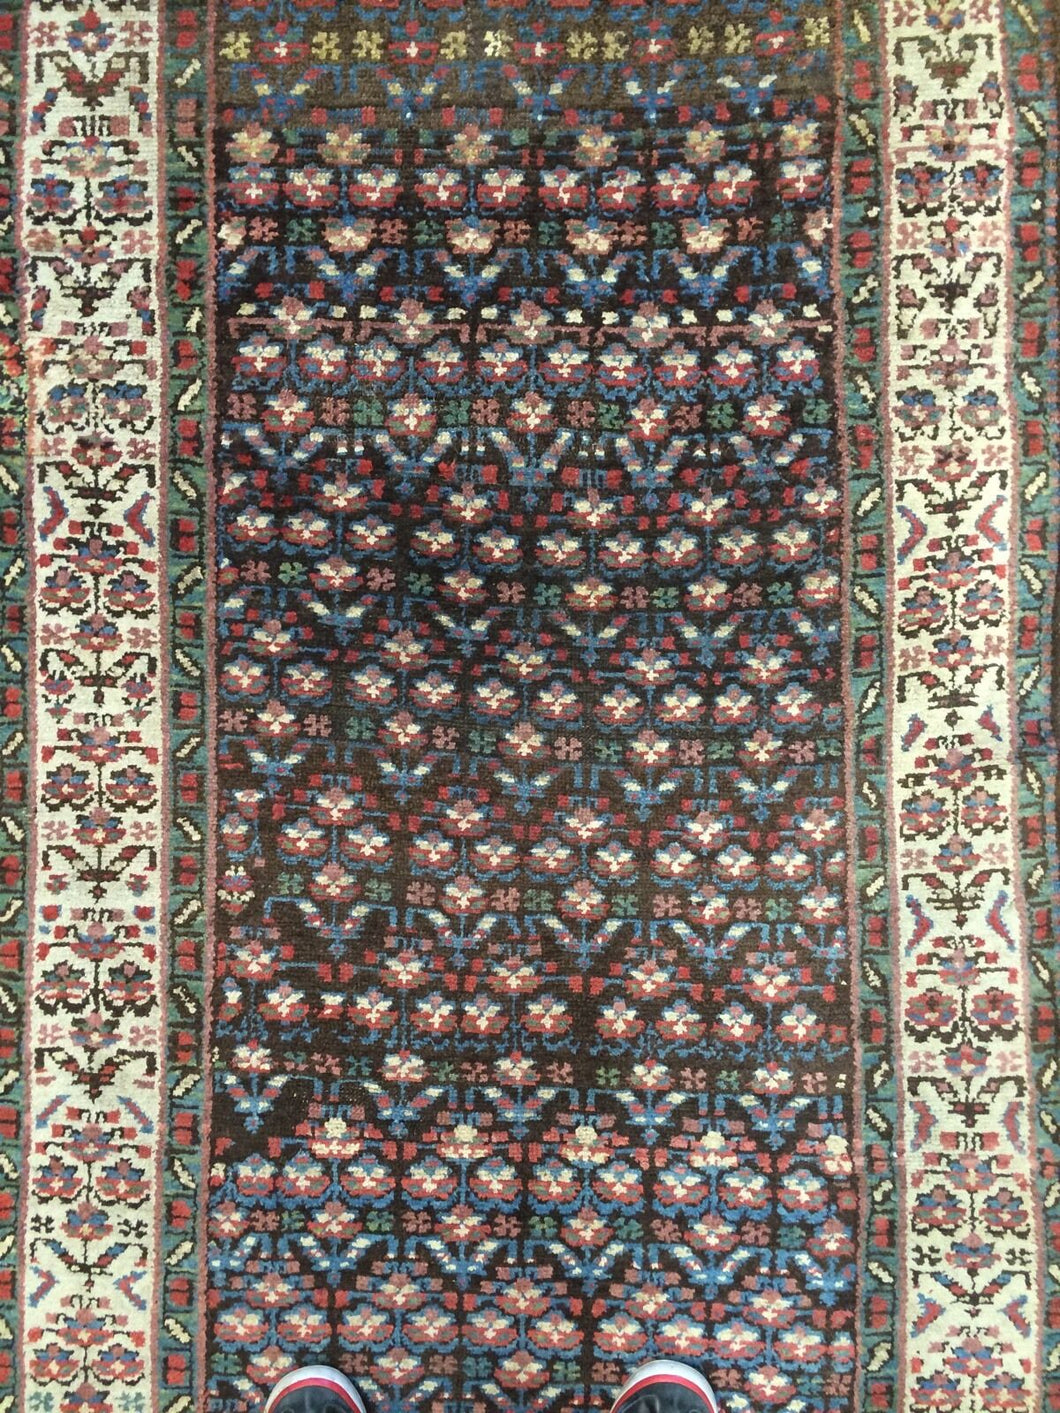 Tremendous Tribal - 1900s Antique Kurdish Runner - Persian Rug - 3'2